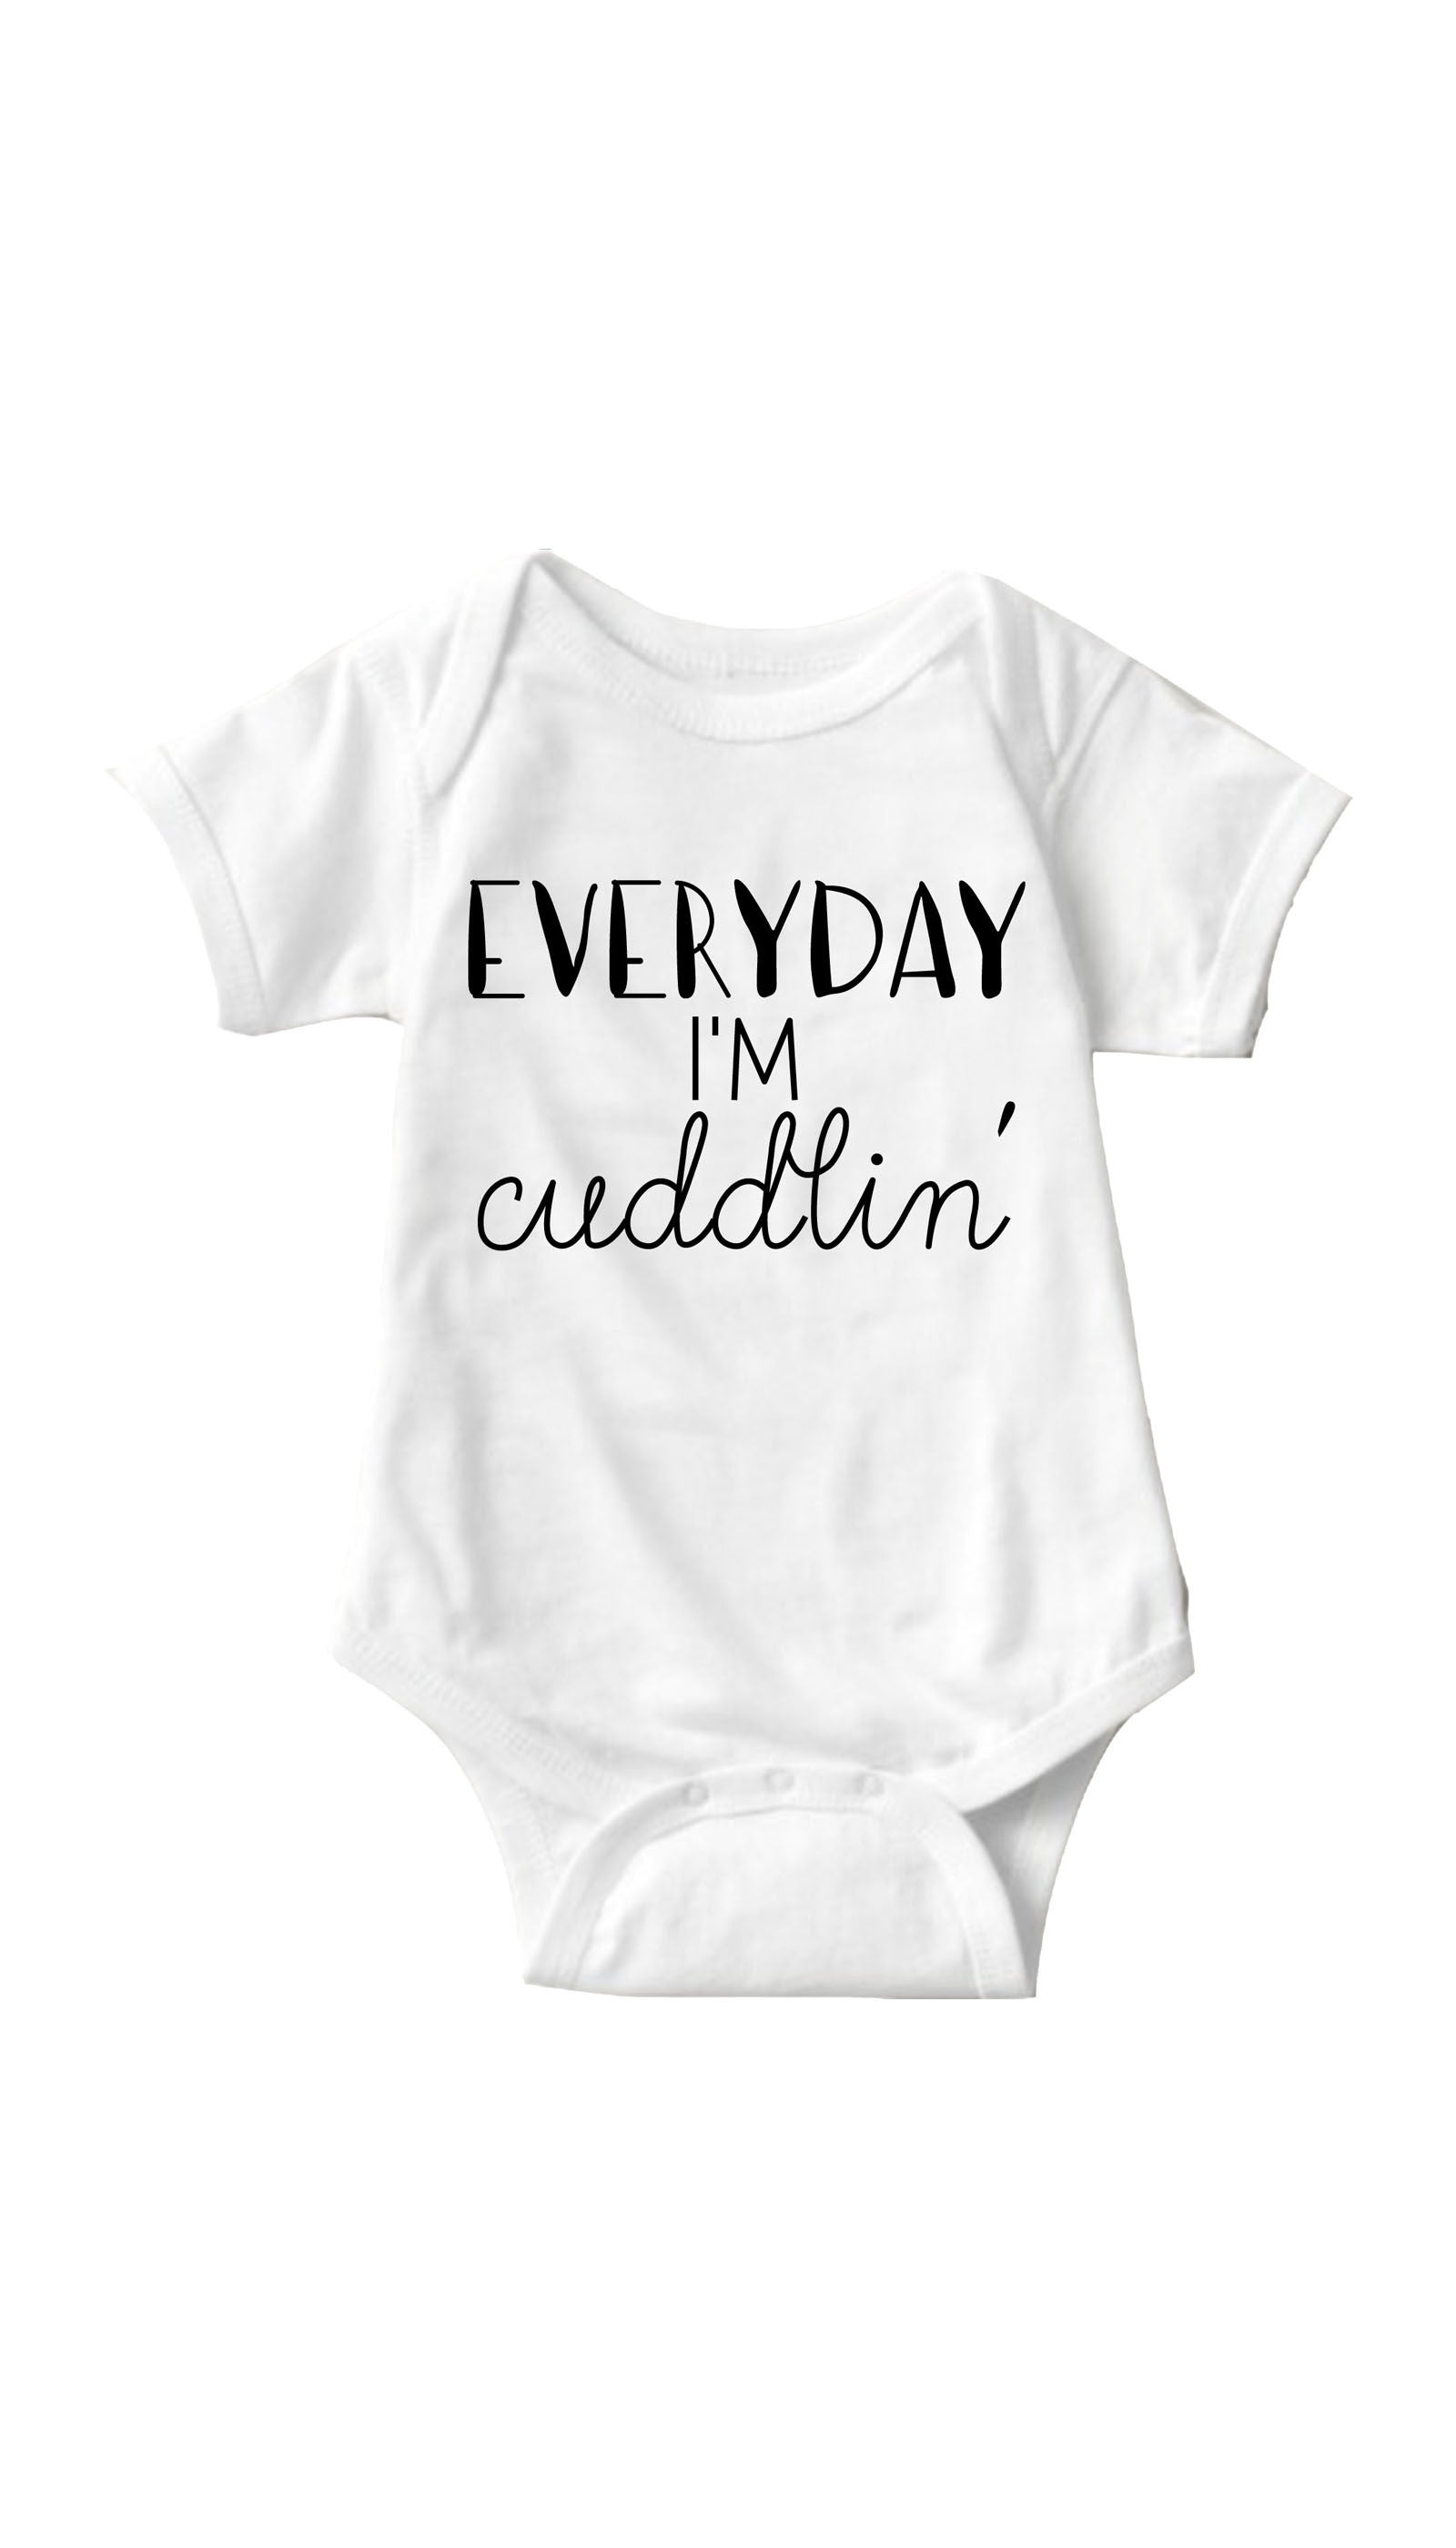 Everyday I'm Cuddlin White Baby Onesie | Sarcastic ME